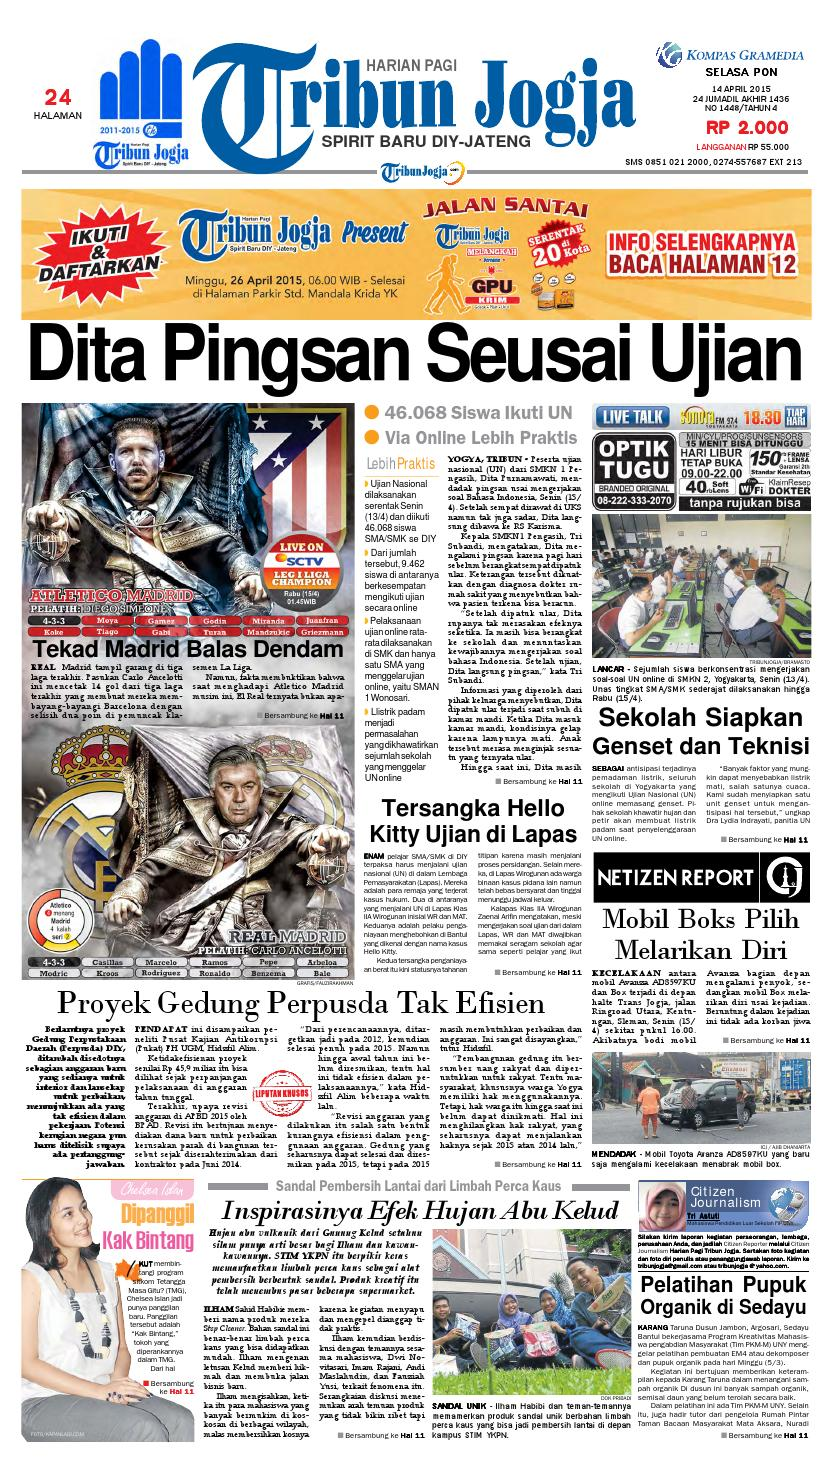 Tribunjogja 14 04 2015 By Tribun Jogja Issuu Produk Ukm Bumn Permen Tape Ladida